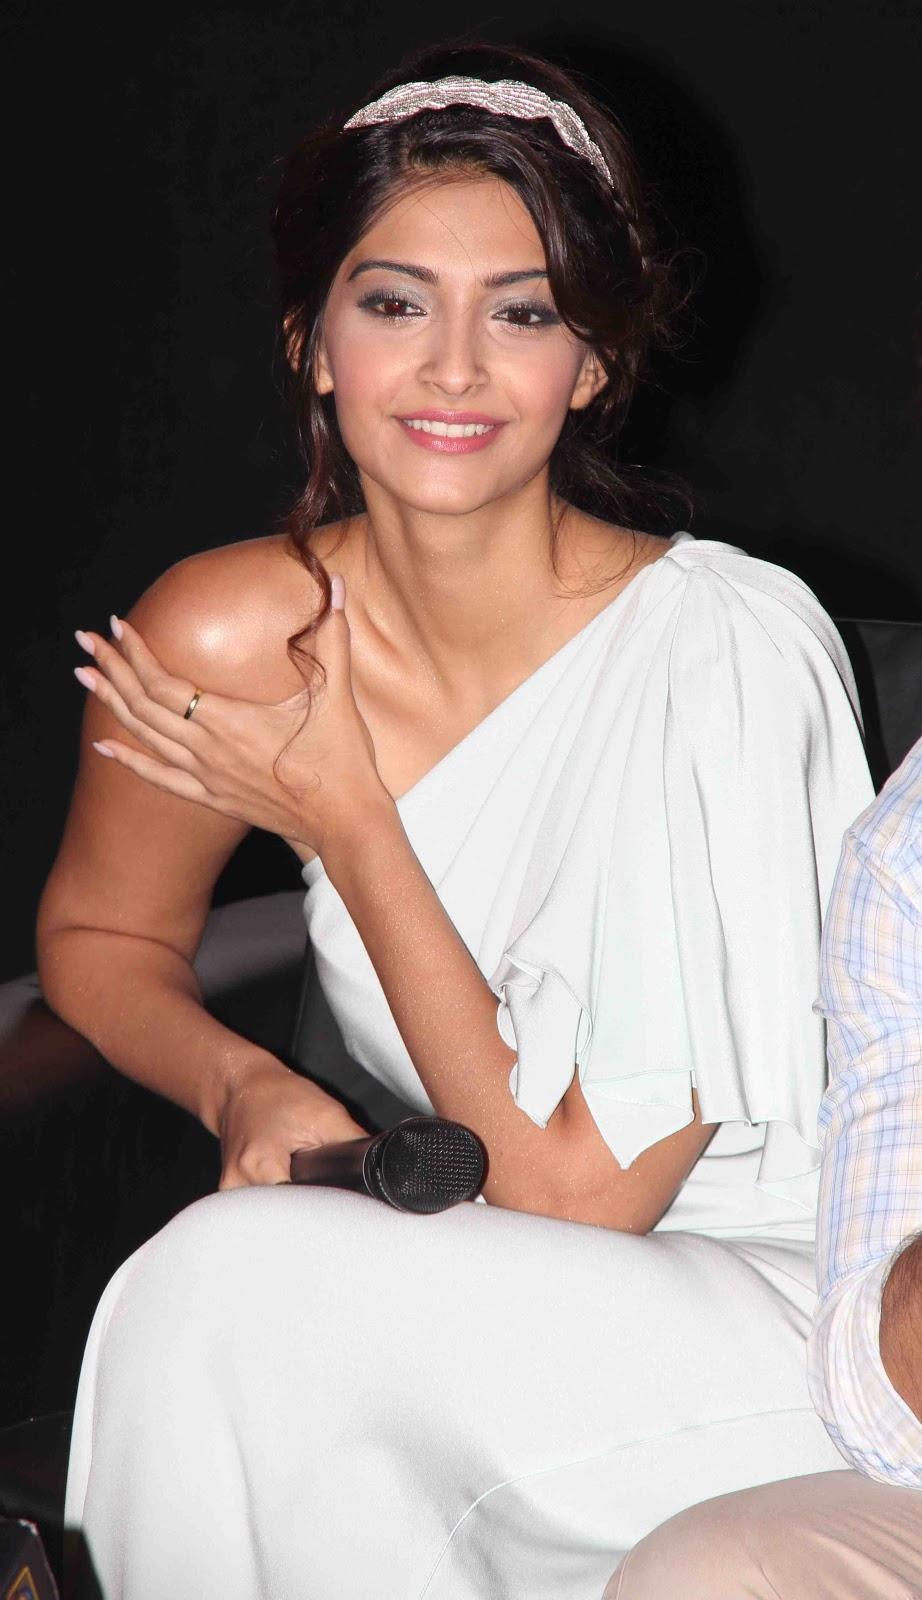 High Quality Bollywood Celebrity Pictures: Sonam Kapoor ...